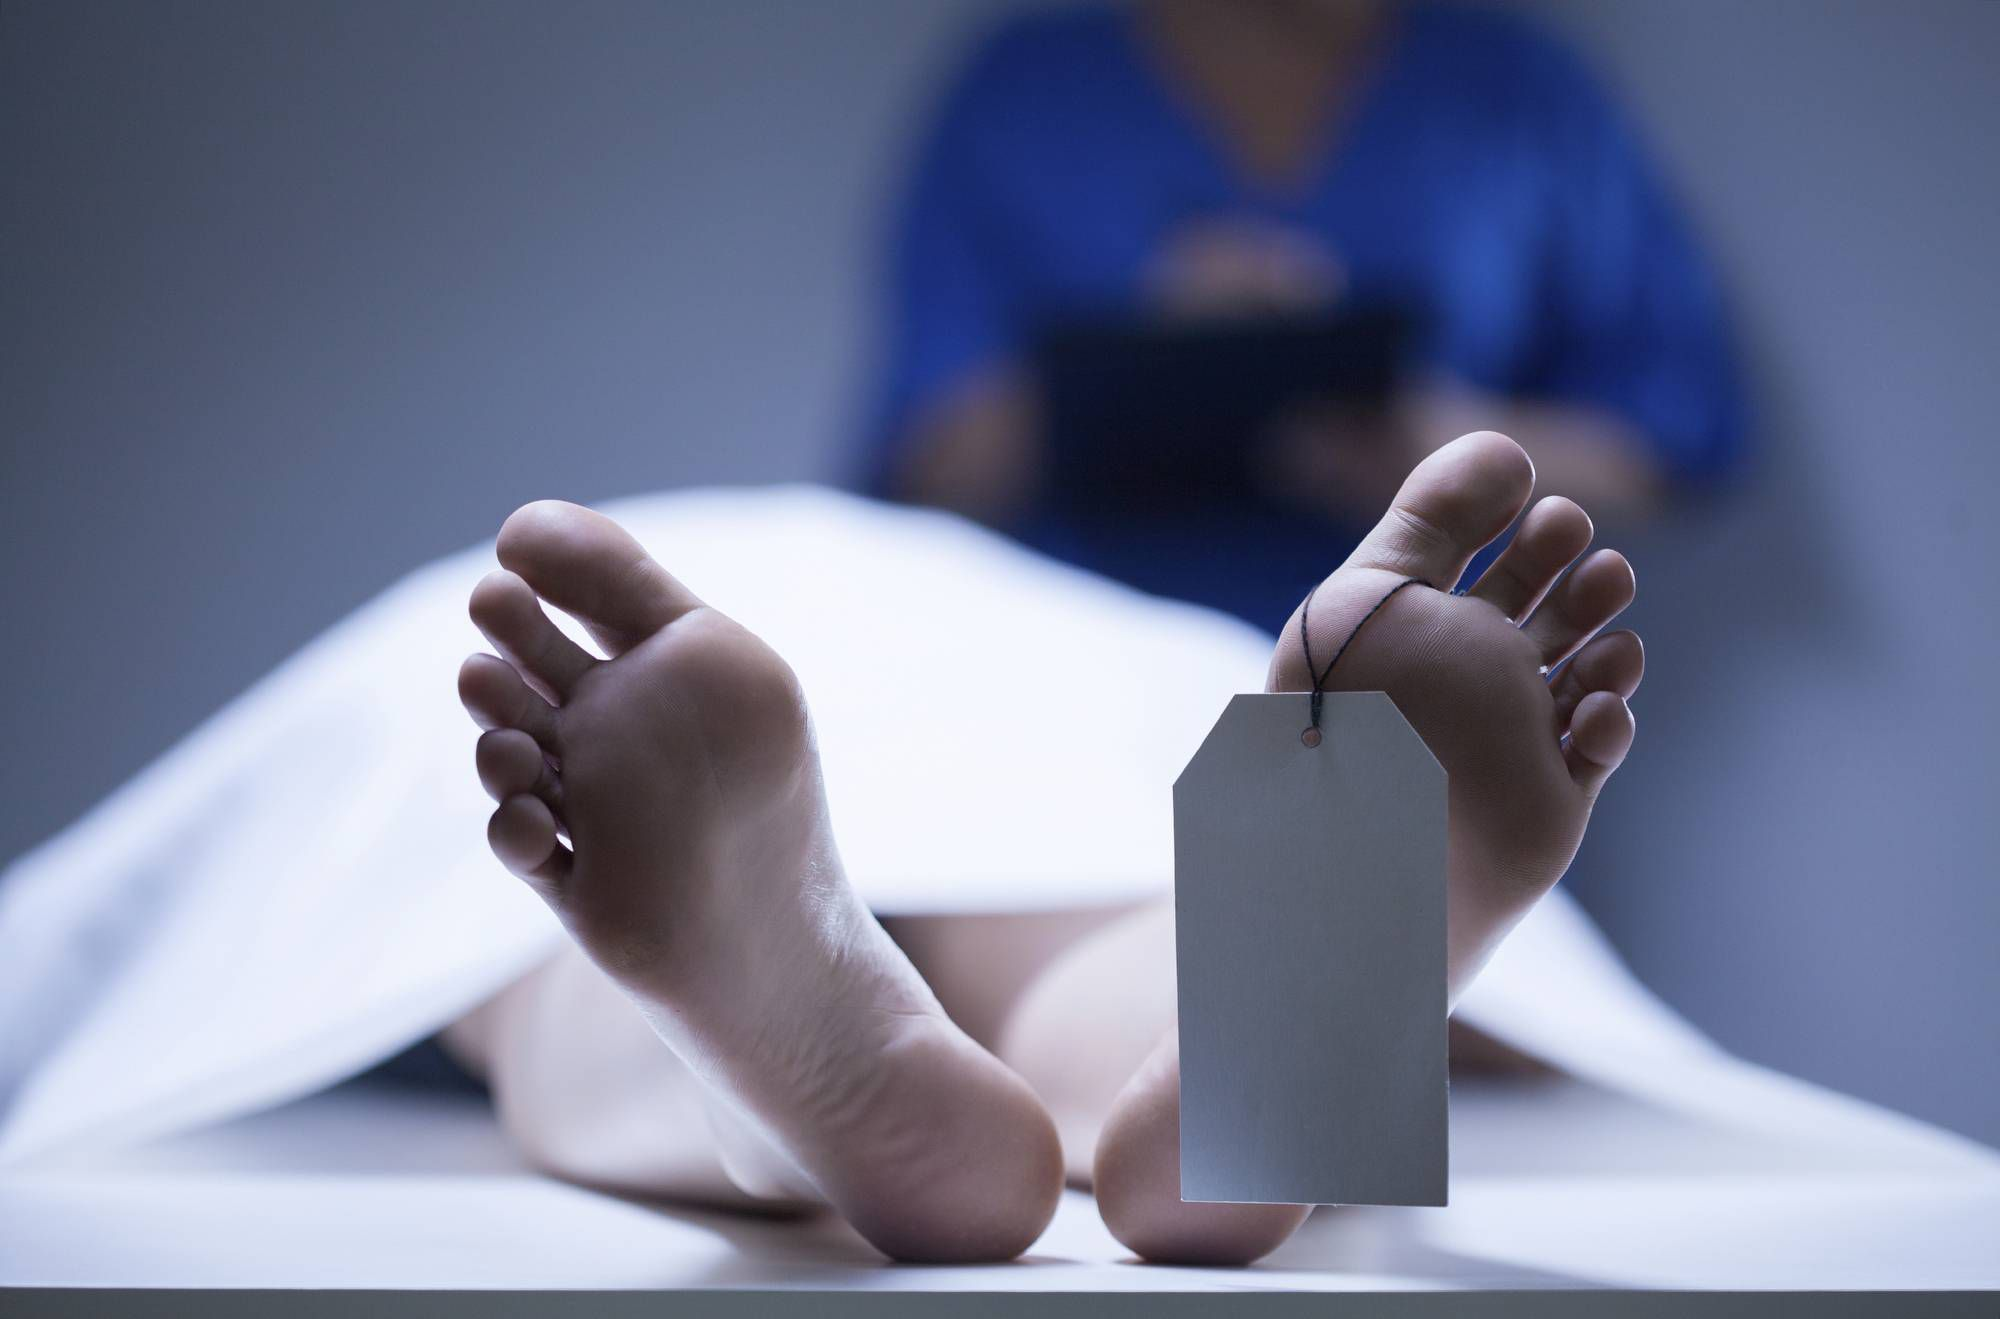 German woman wakes up in funeral home hours after being declared dead